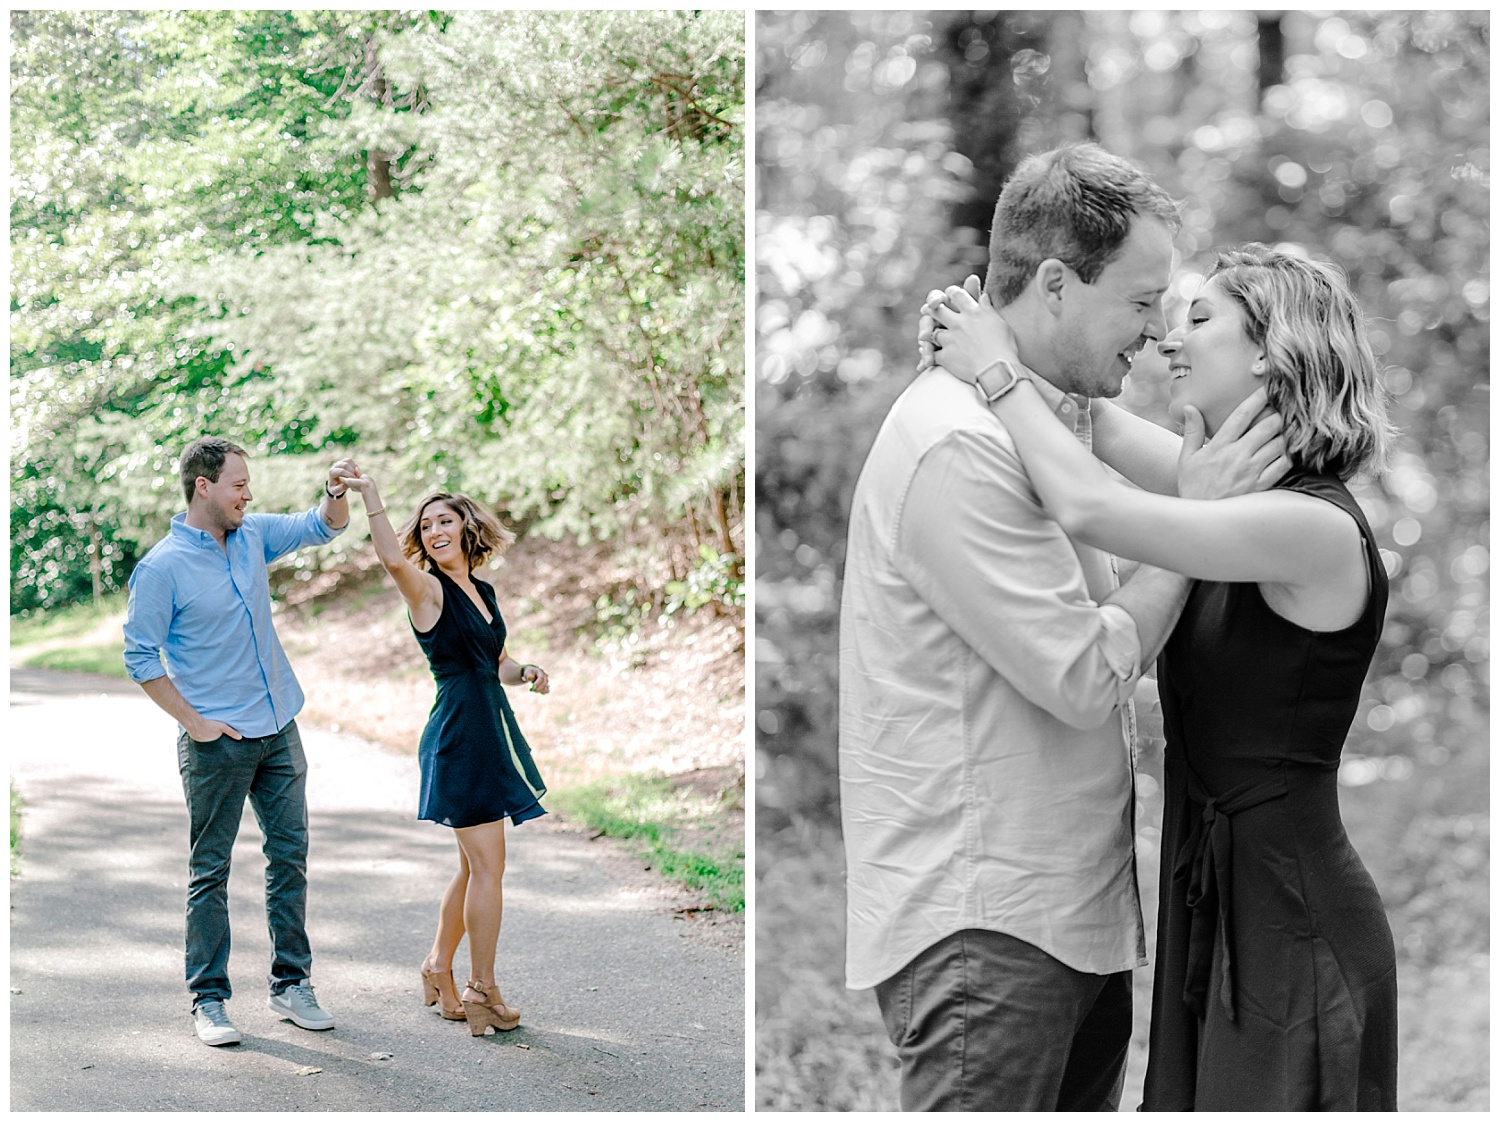 Wooded sunny Summertime engagement session in Odenton Maryland by Pennsylvania based wedding and lifestyle photographer Lytle photography_0006.jpg